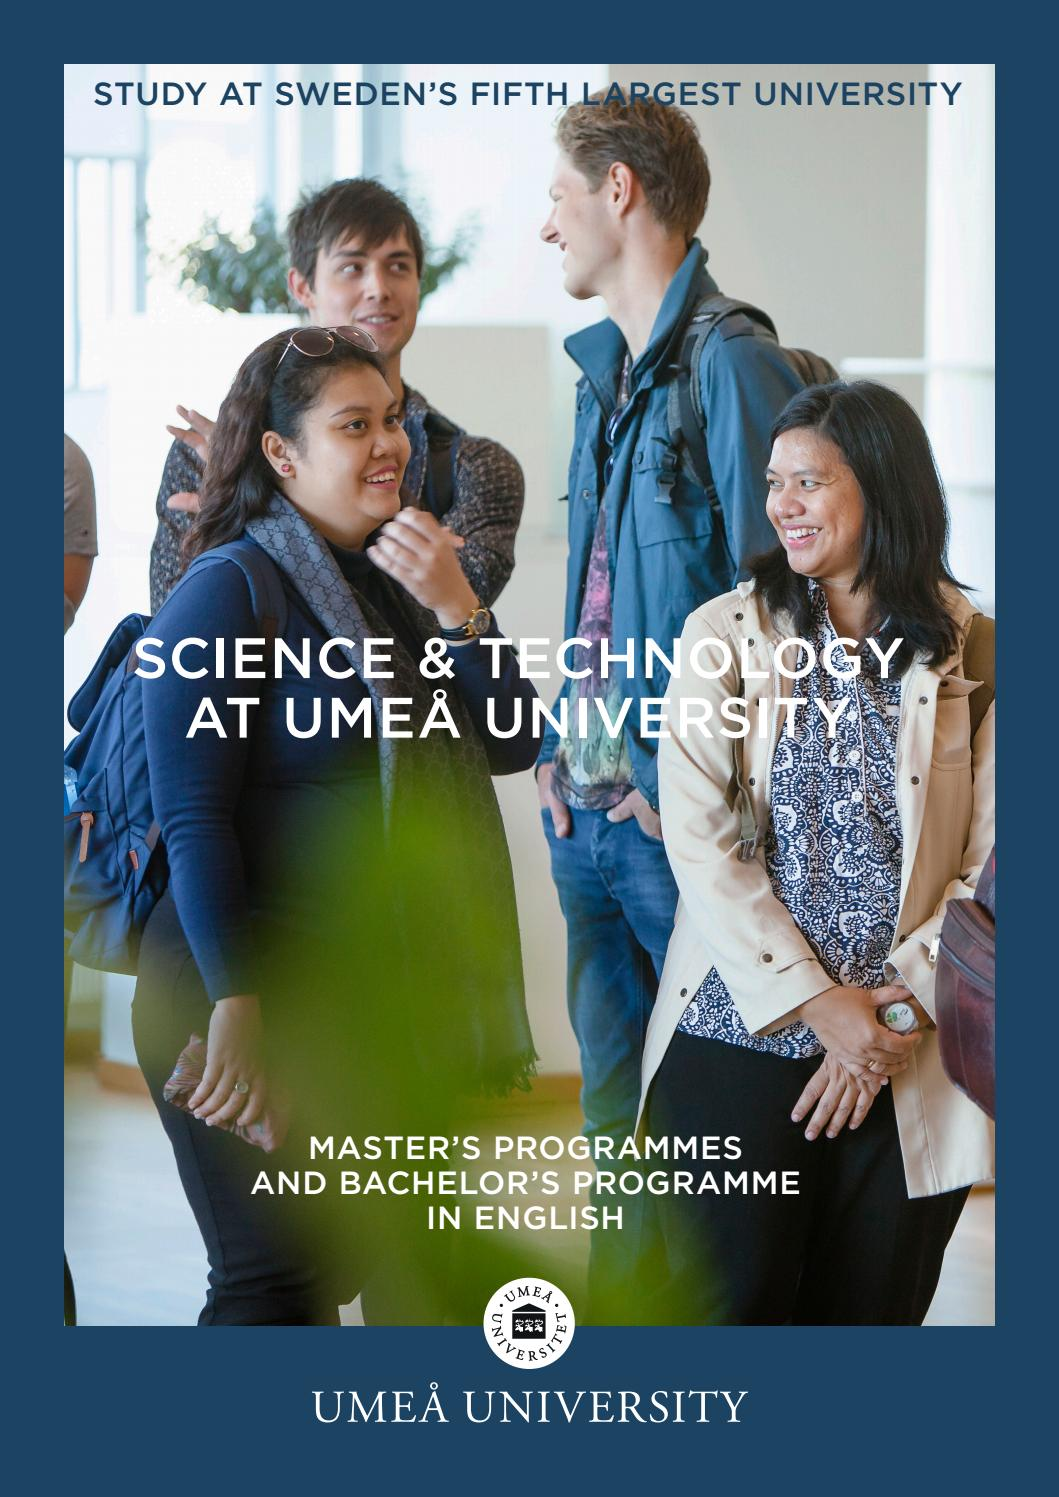 Master S Programmes In Science Technology At Umea University Sweden By Teknisk Naturvetenskapliga Fakulteten Umea Universitet Issuu